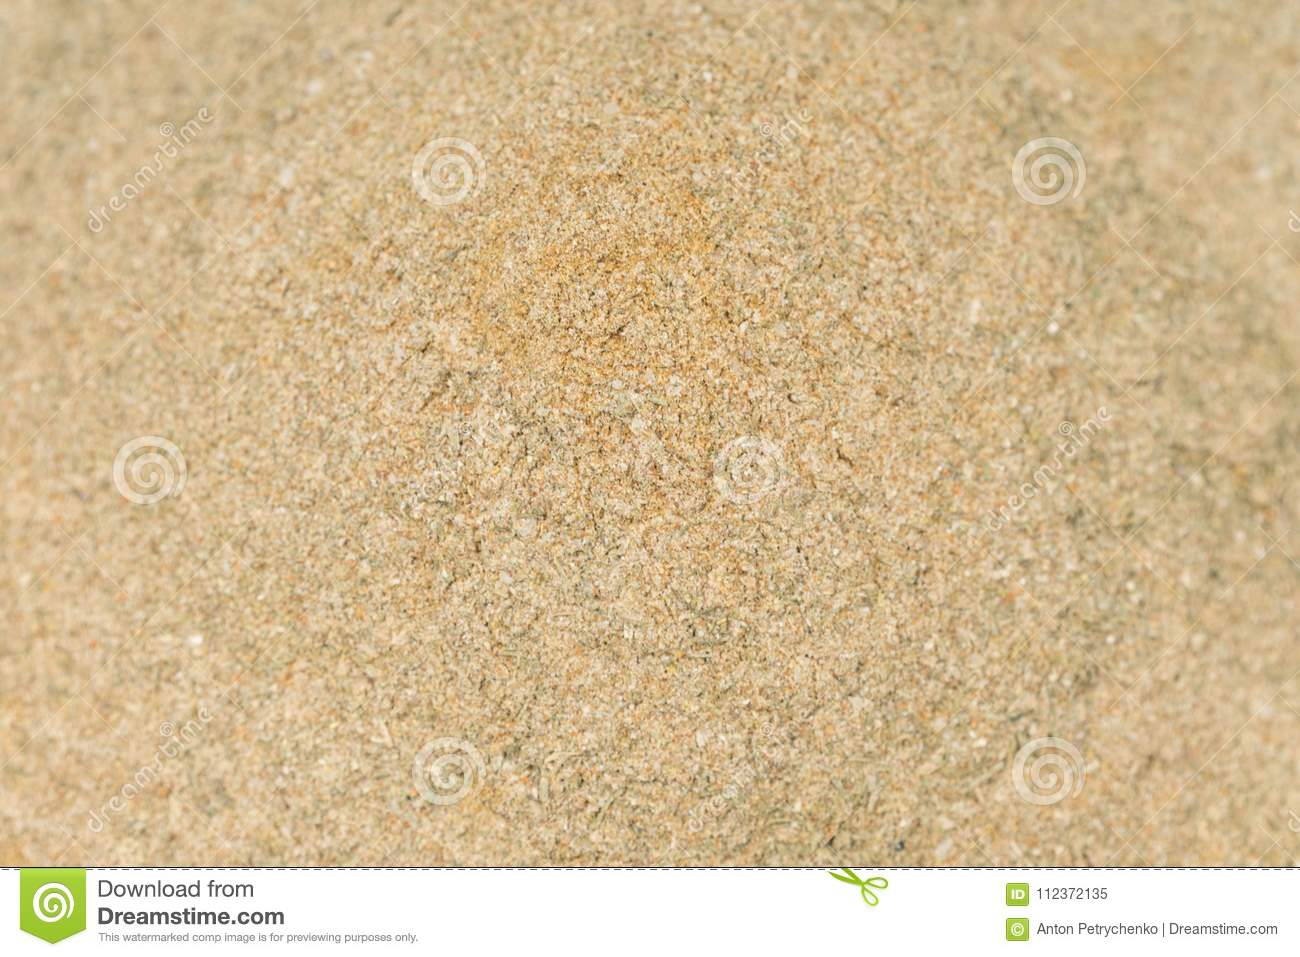 Brown background of ground pepper